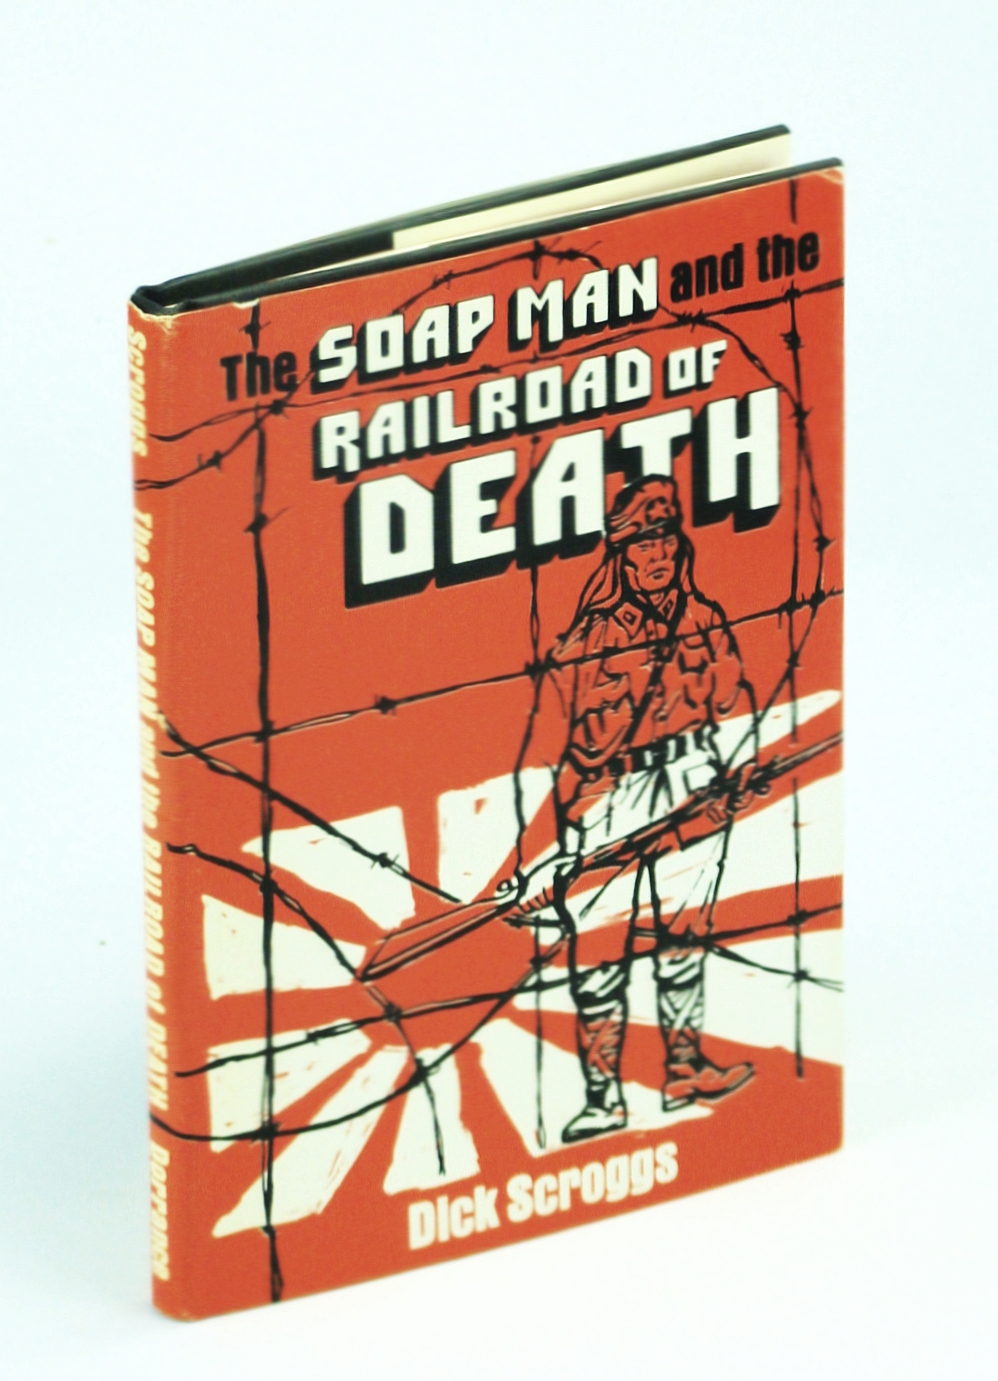 The Soap Man and the Railroad of Death